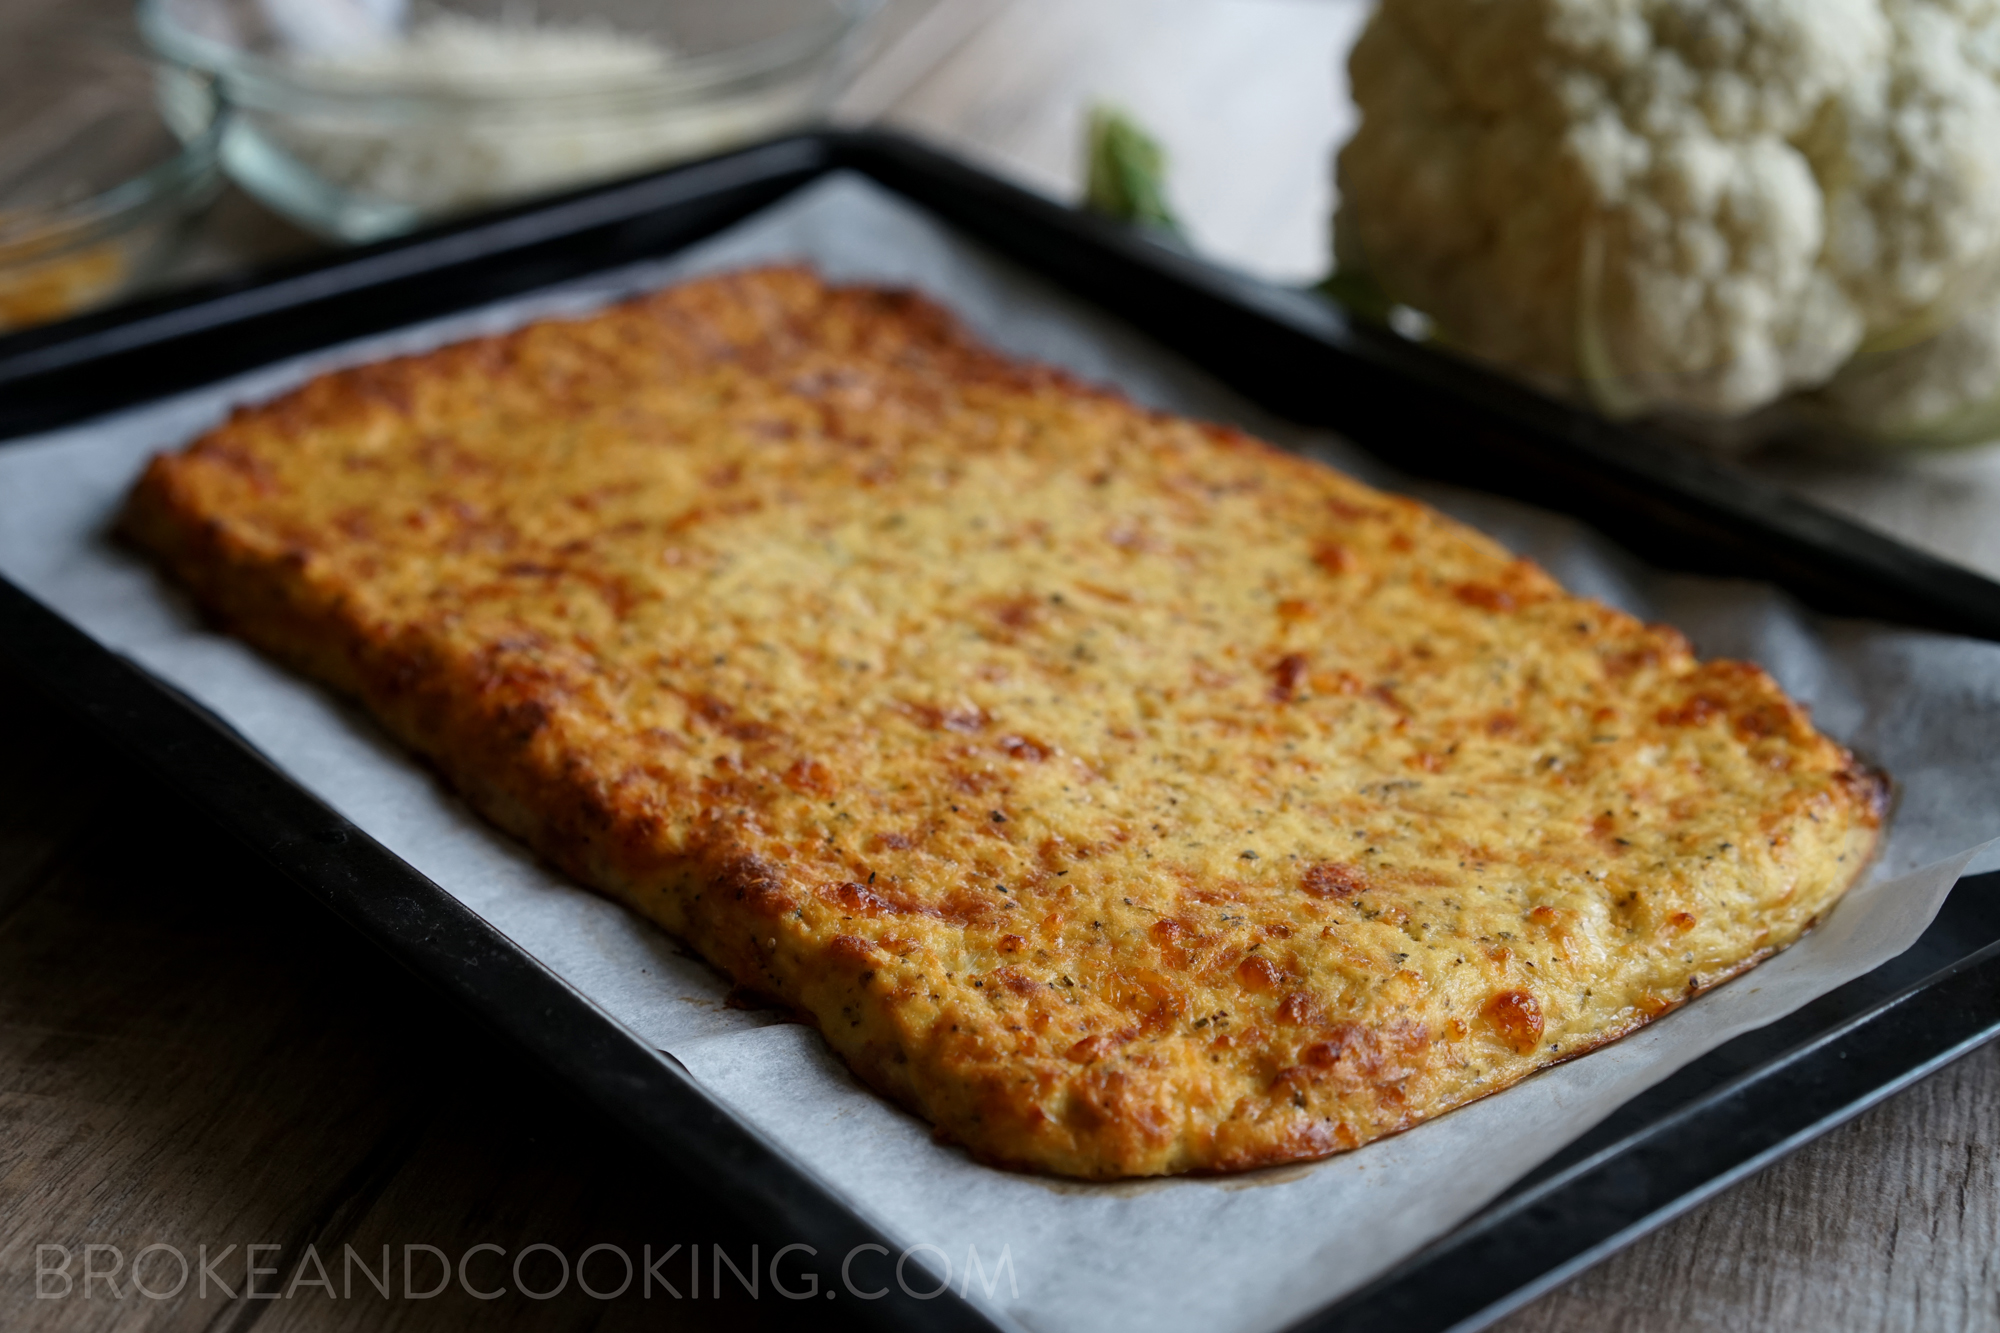 Low Carb, Gluten Free Cheesy Cauliflower Breadsticks Recipe by Broke and Cooking - www.brokeandcooking.com